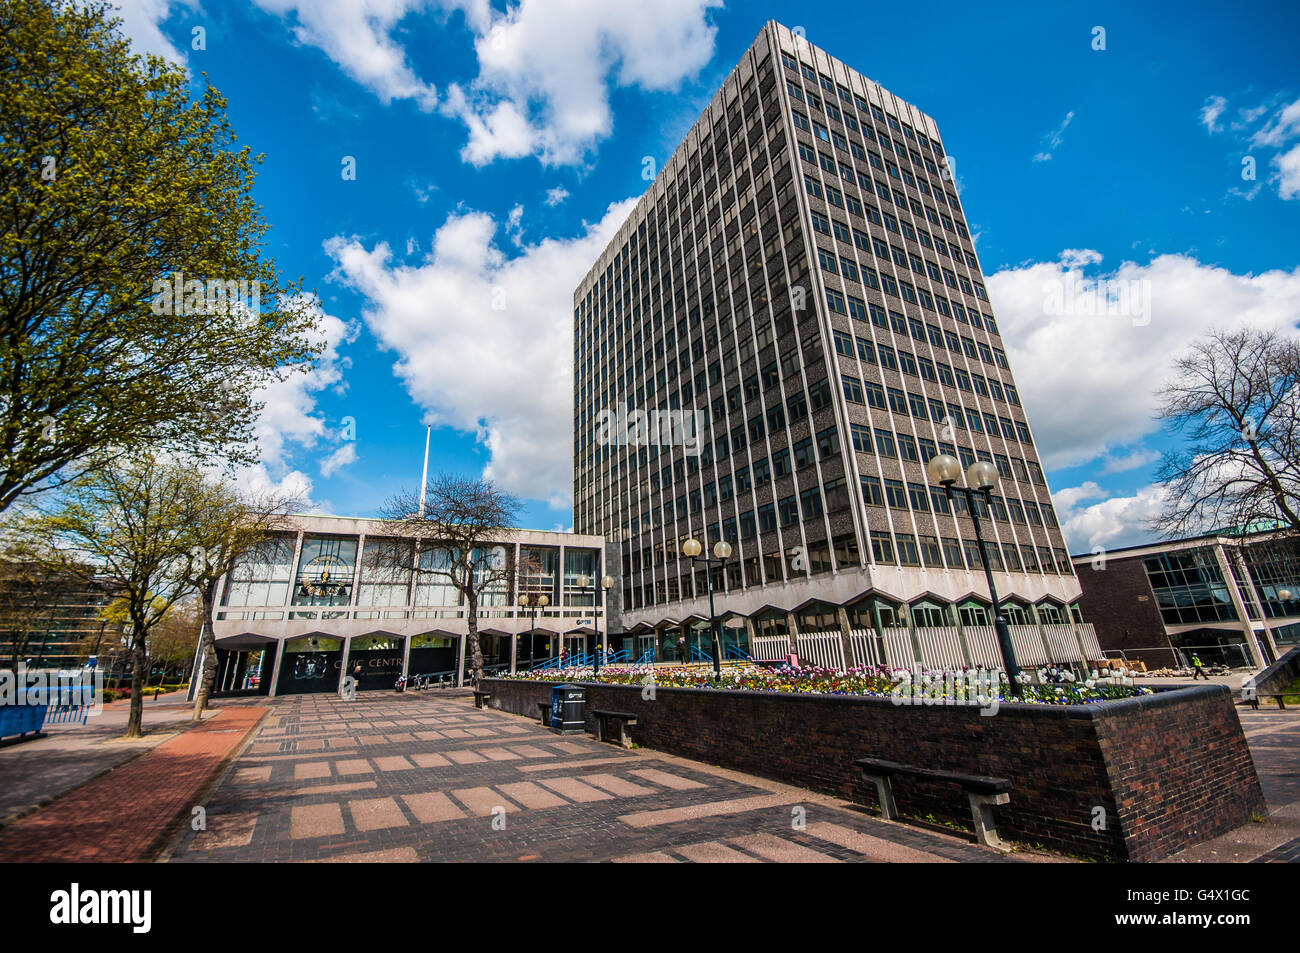 The Civic Centre is the home of the Southend Borough Council offices and other local services - Stock Image